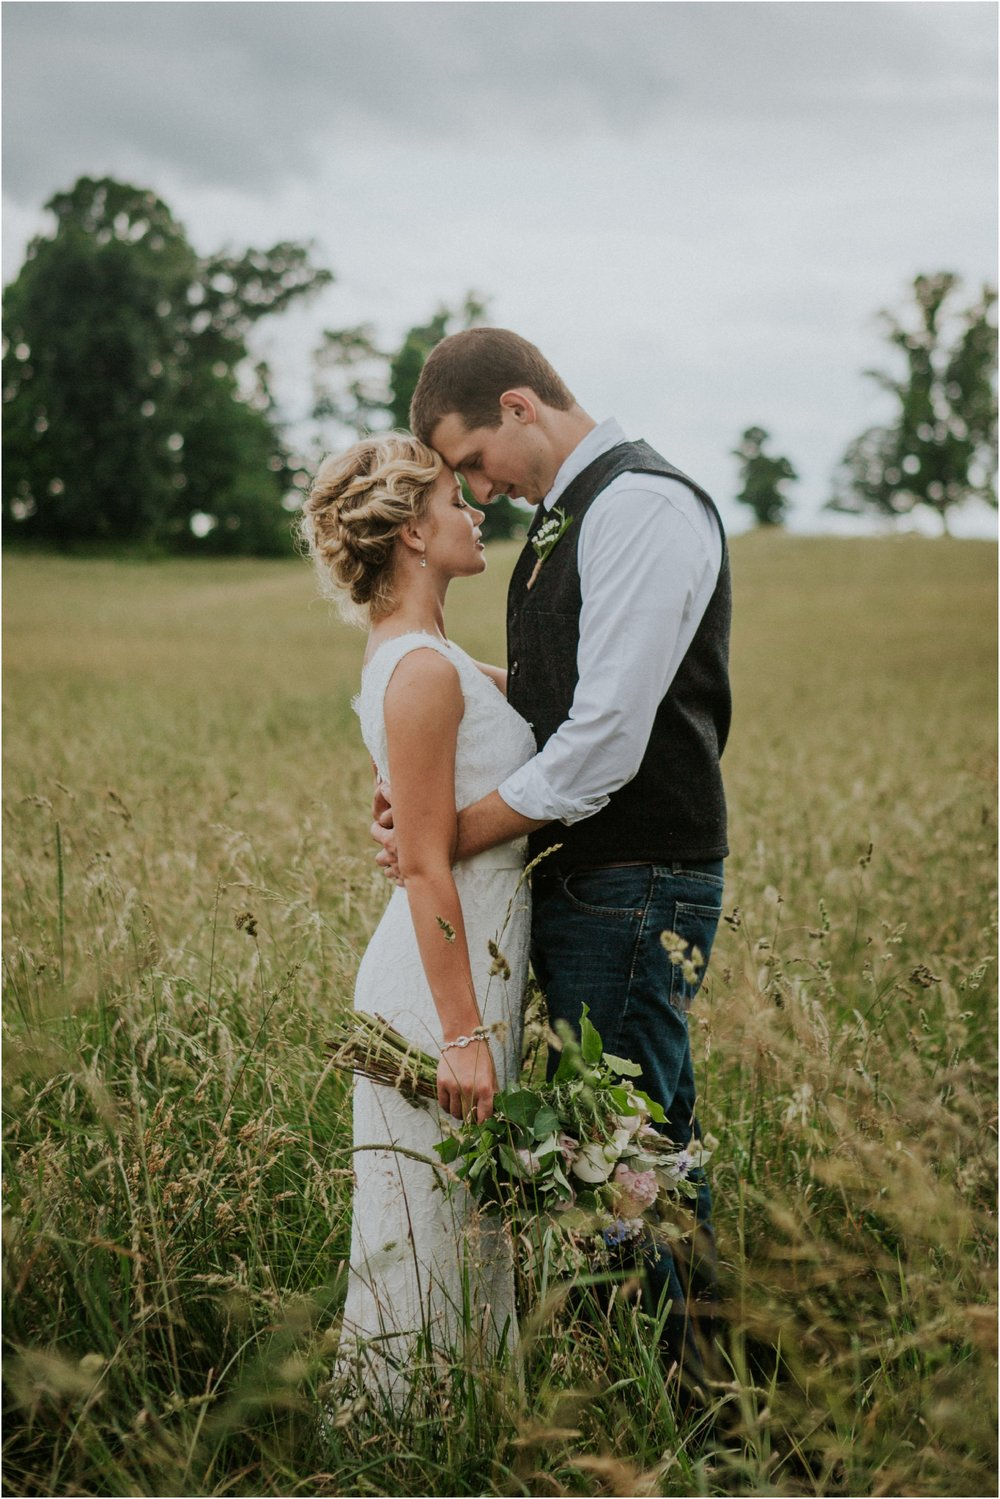 the-millstone-limestone-rustic-intimate-outdoors-backyard-wedding-wildflowers-tennessee_0057.jpg